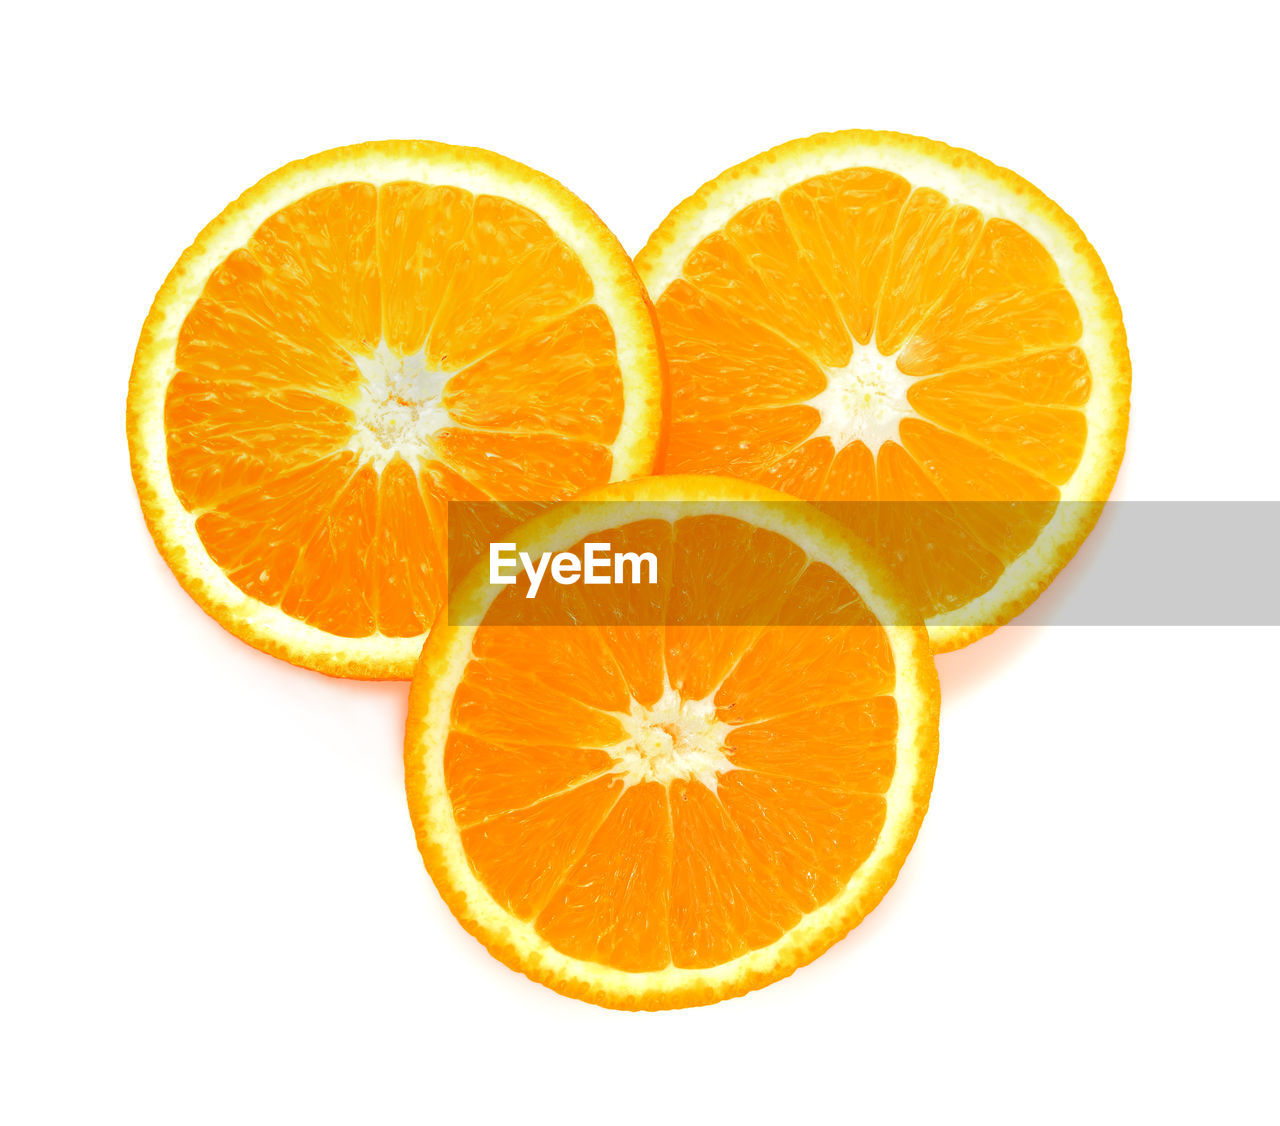 wellbeing, healthy eating, studio shot, fruit, orange color, food and drink, food, white background, indoors, slice, freshness, cross section, citrus fruit, cut out, orange - fruit, orange, close-up, still life, no people, group of objects, ripe, antioxidant